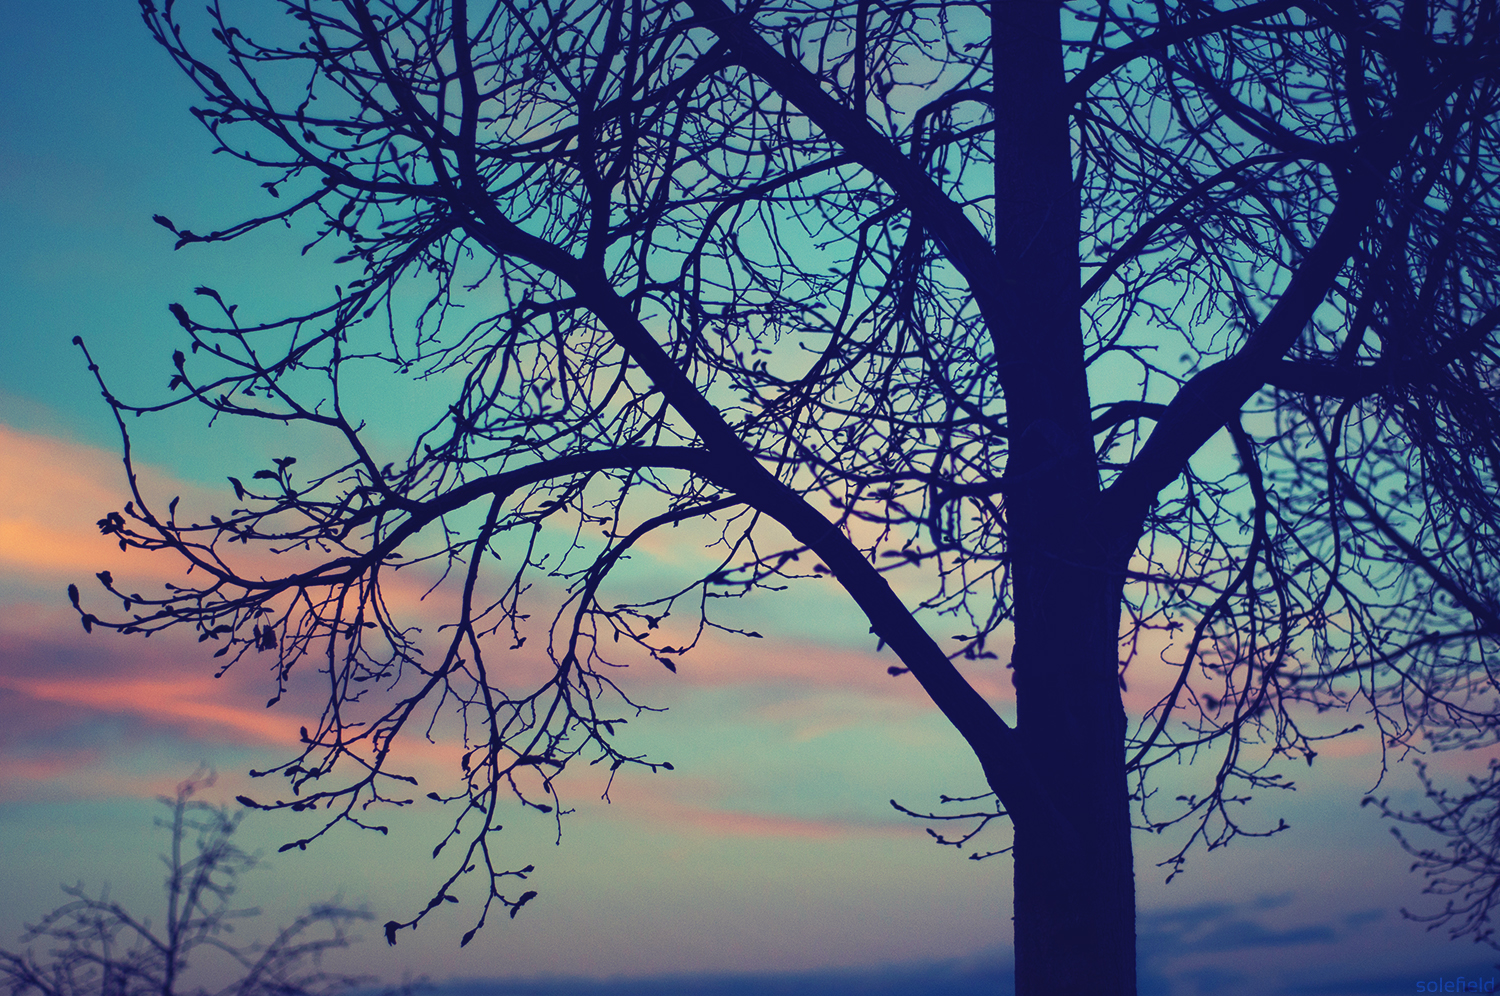 Blue and Pink Sky with Tree Silhouette